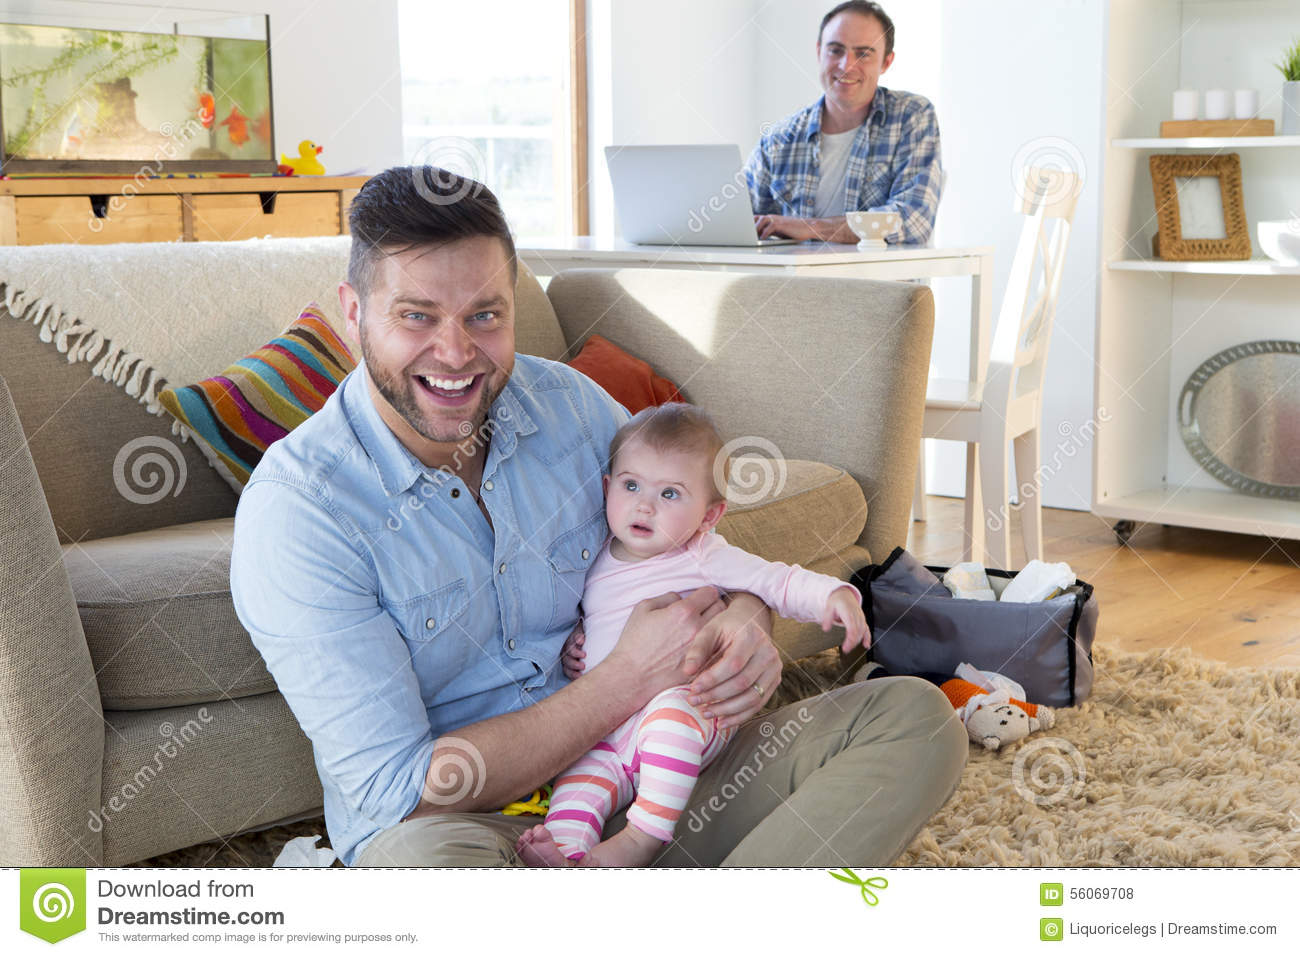 Same sex male couple sitting in their home. One father is sitting on the  floor with their daughter in his arms. They are both smiling at the camera.